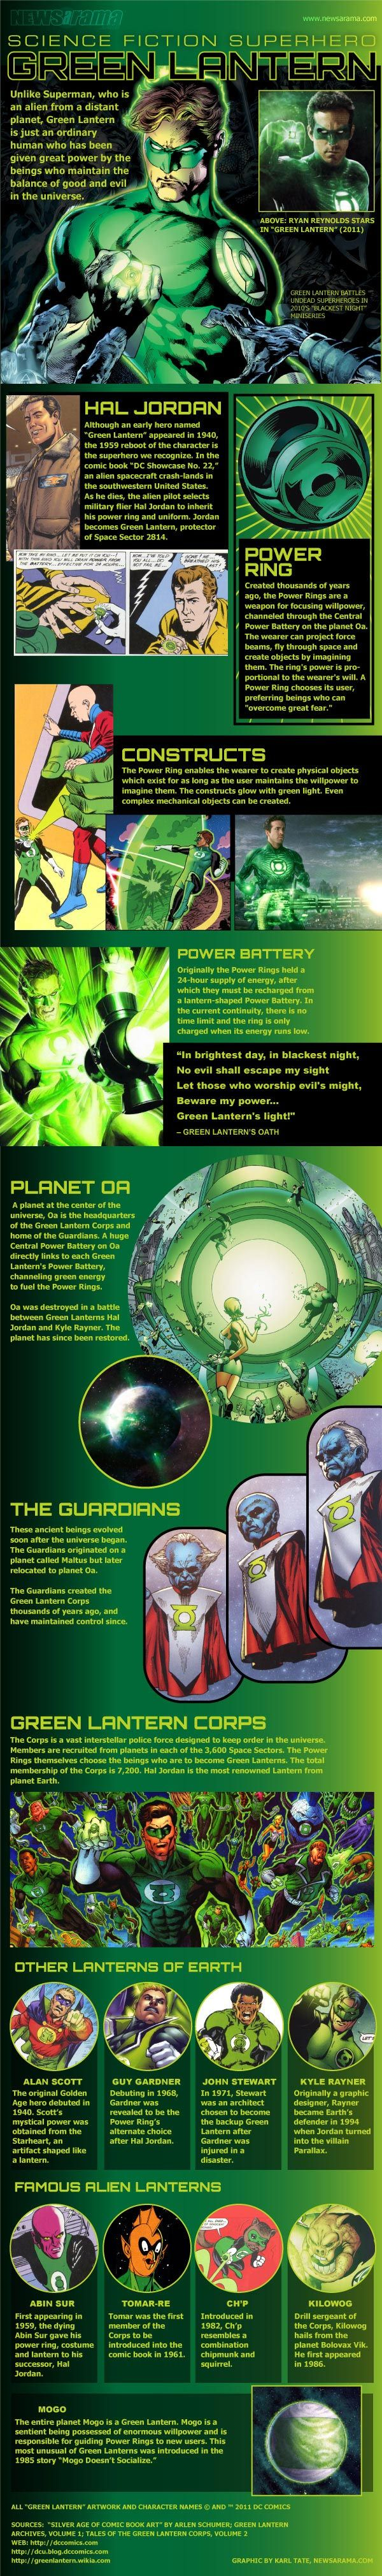 Green Lantern via : 20 Super Infographics About Superheroes | Visual.ly Blog